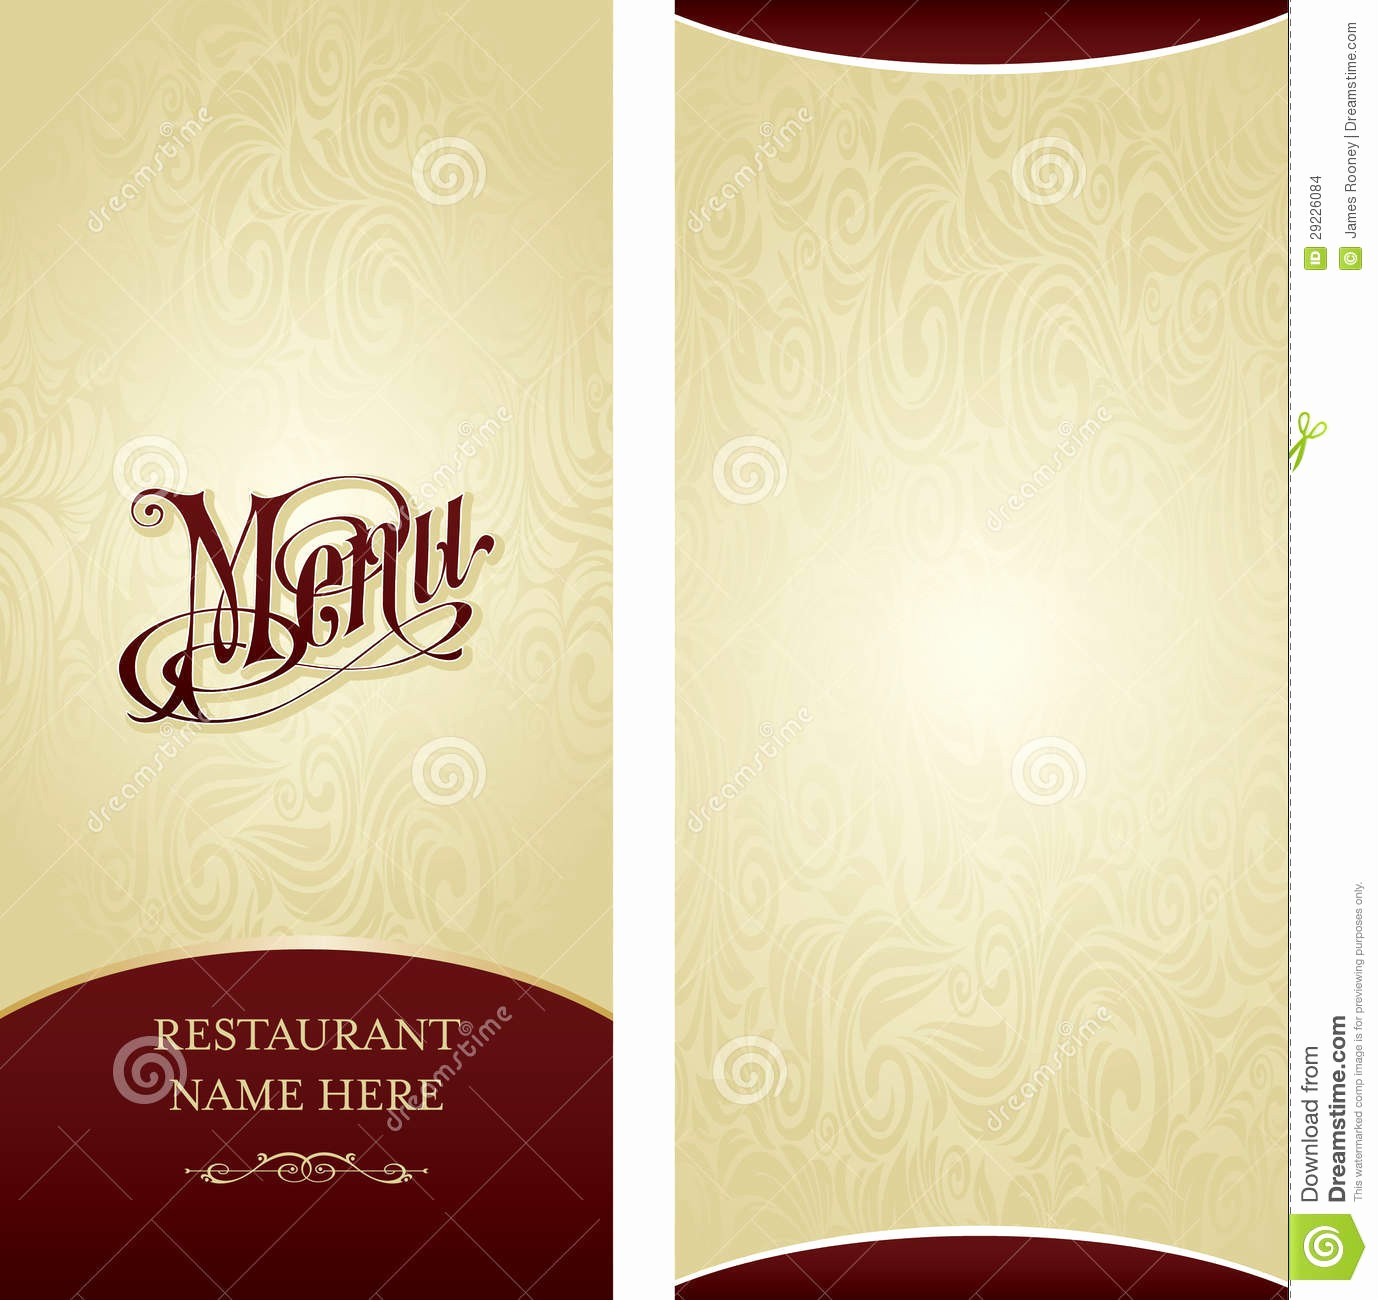 Menu Card Template Free Download Awesome 13 Menu Design Samples Restaurant Menu Examples